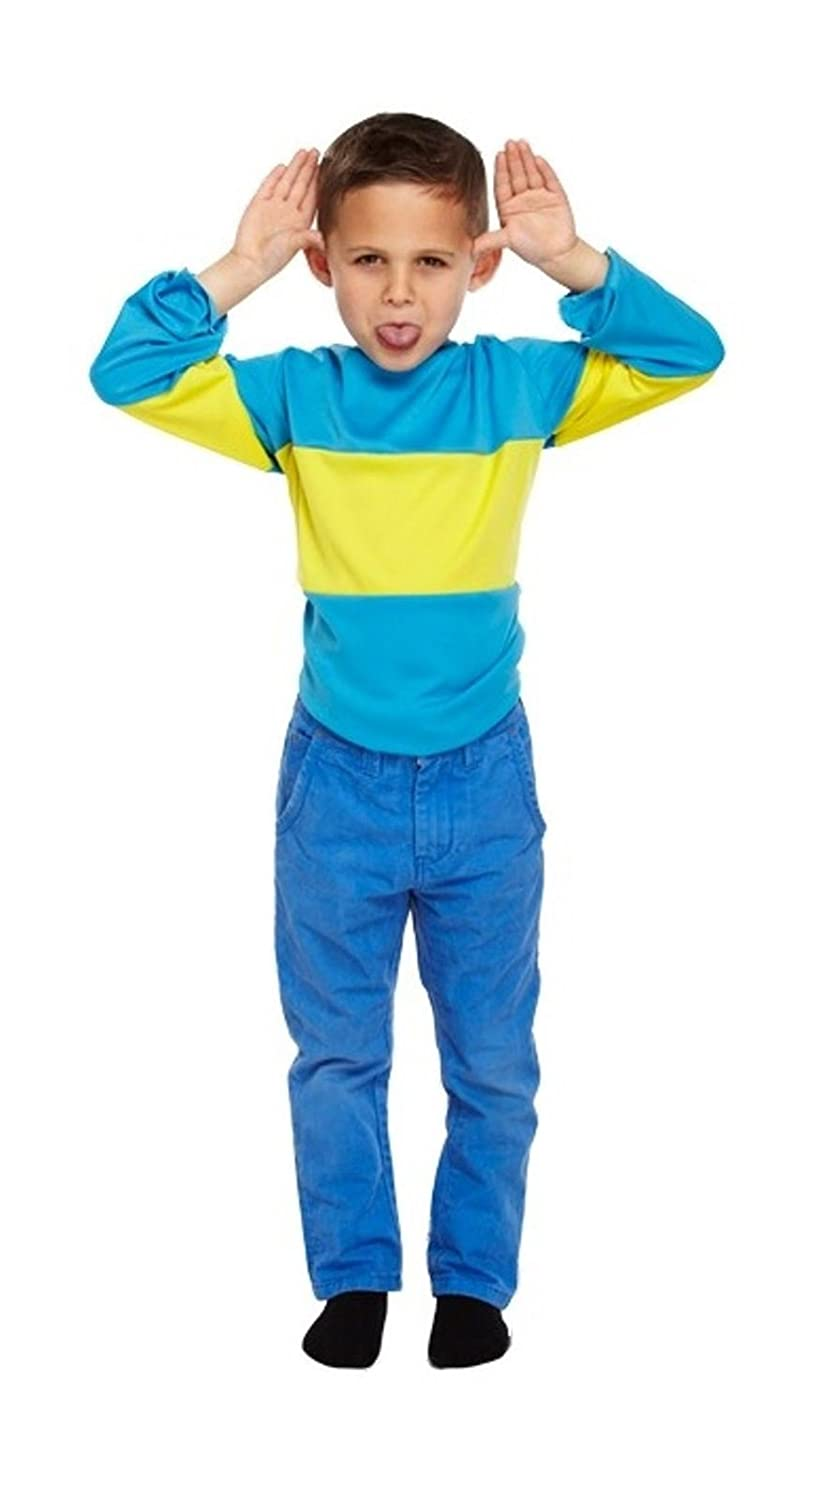 American Football Player USA Sports Kids Fancy Dress Costume Sizes 5-13 Years